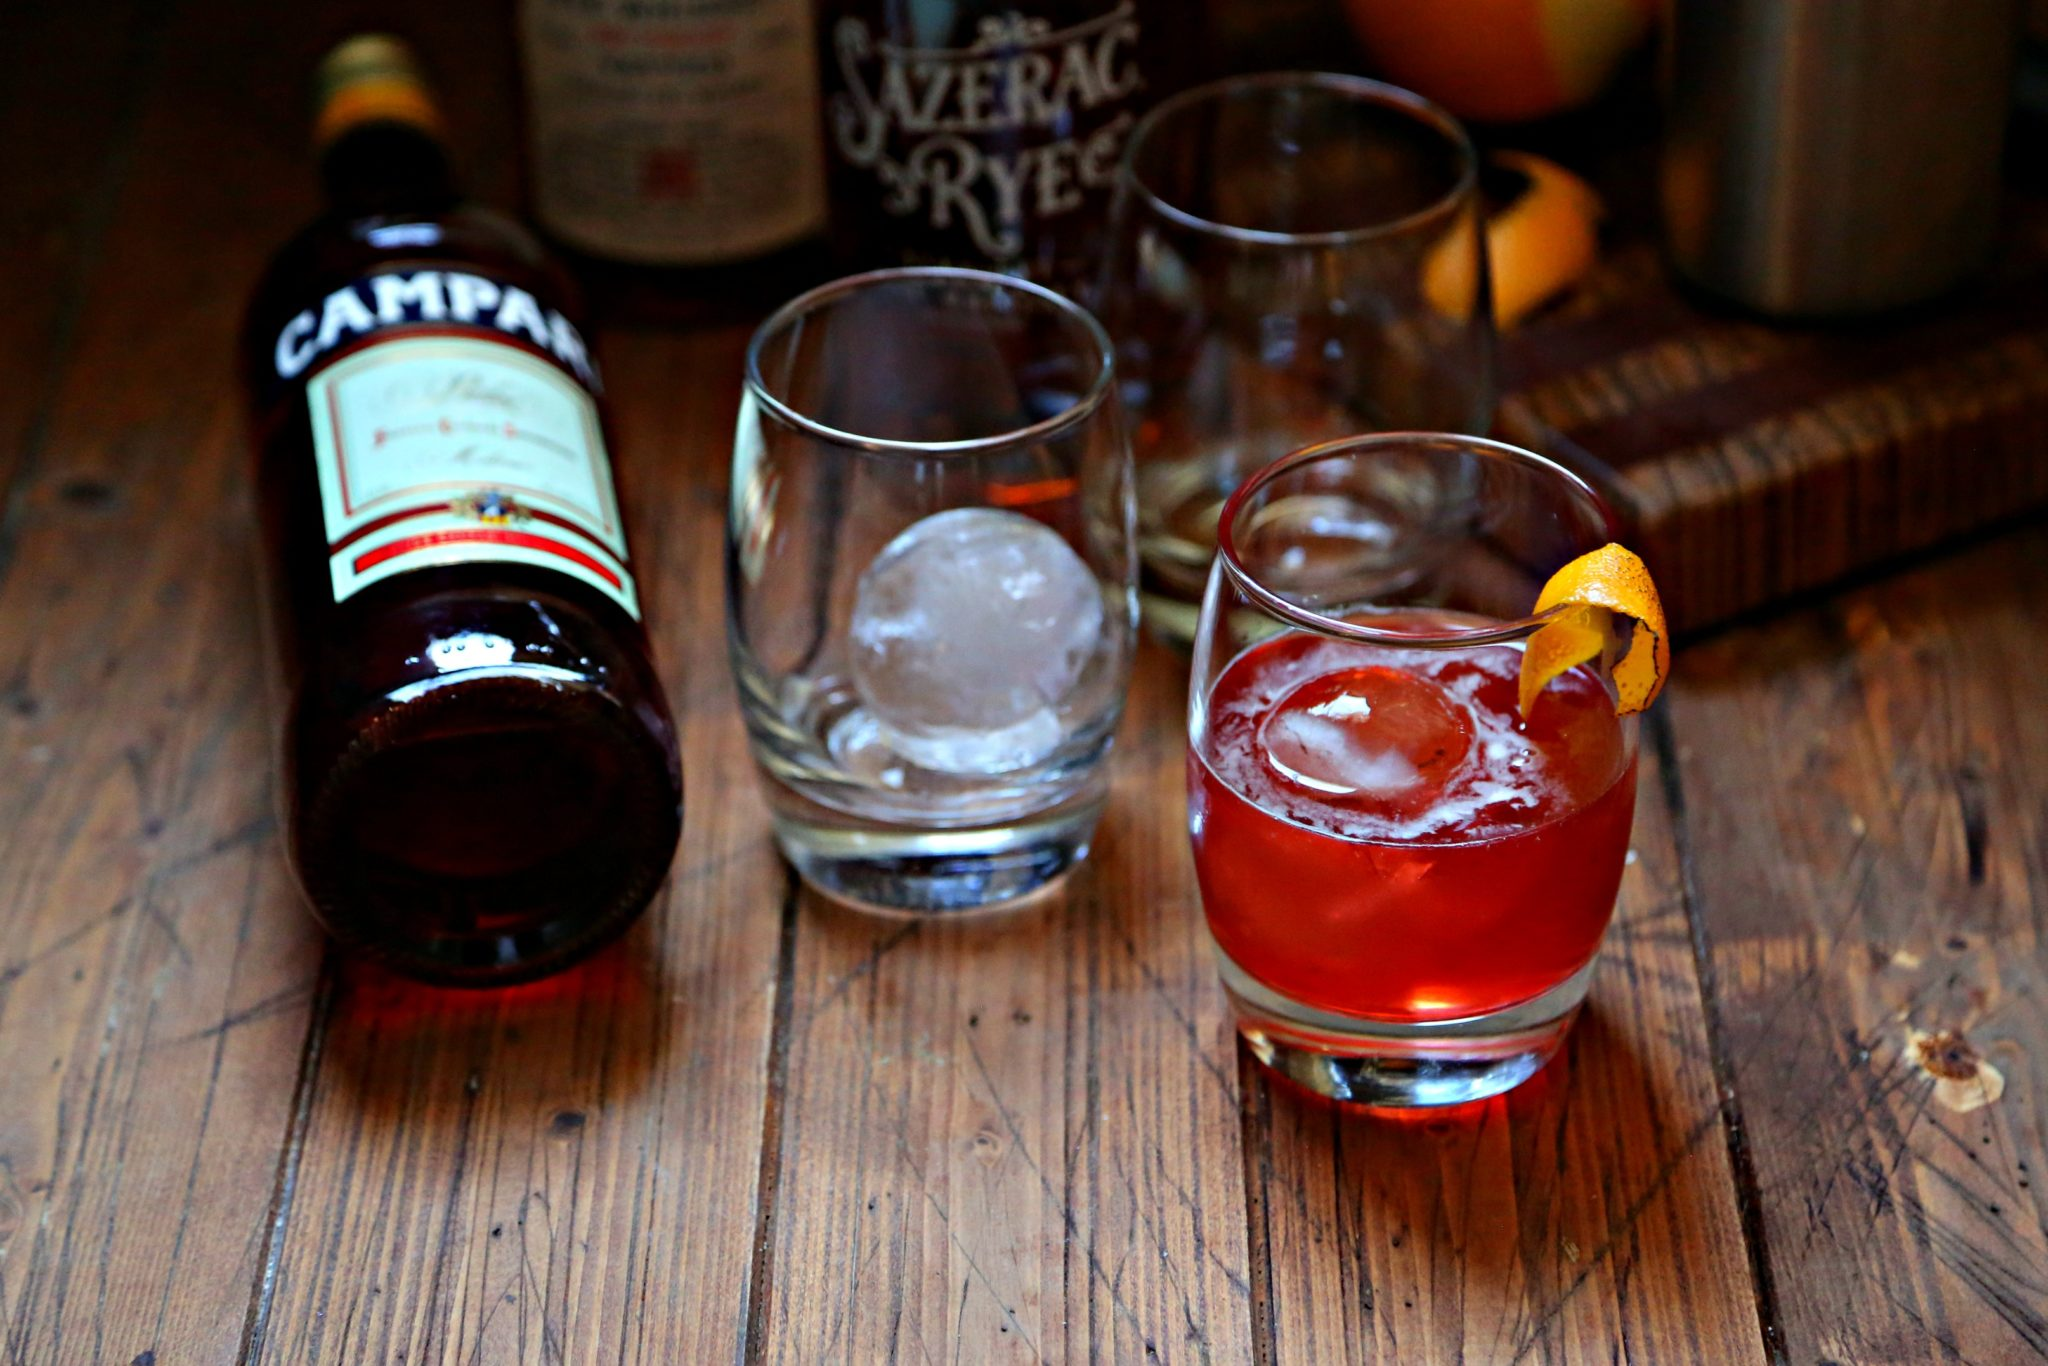 Boulevardier Cocktail with ice sphere and orange peel, extra glasses, bottle of campari and rye whiskey to side